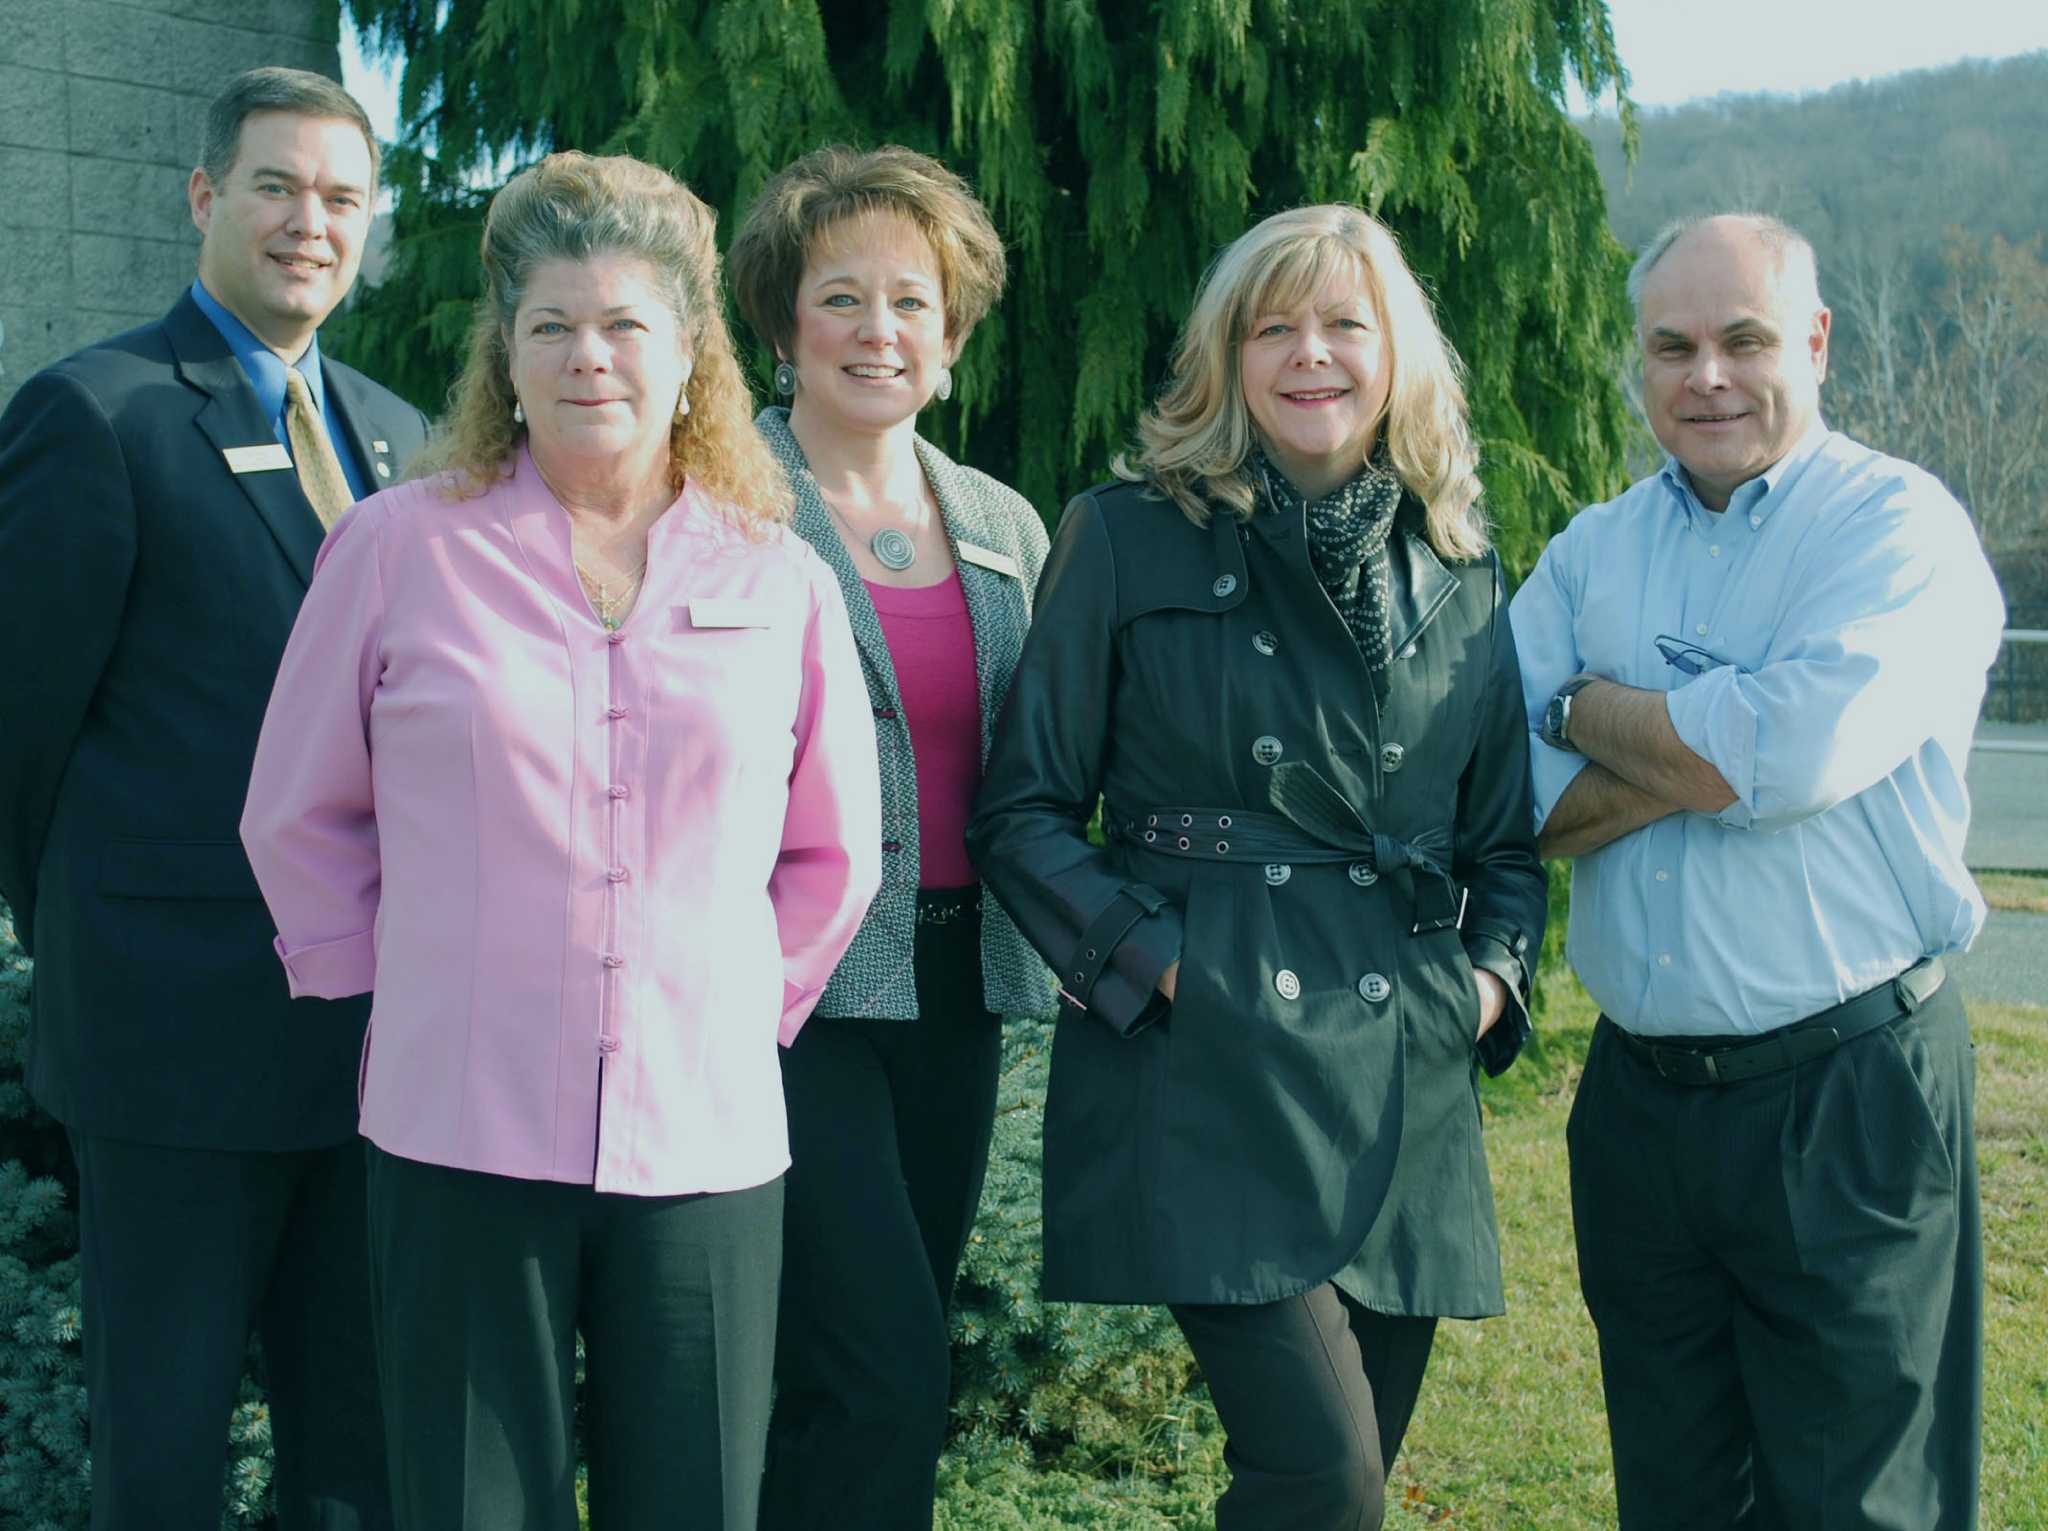 Chamber gala to celebrate its 15th anniversary - New Milford